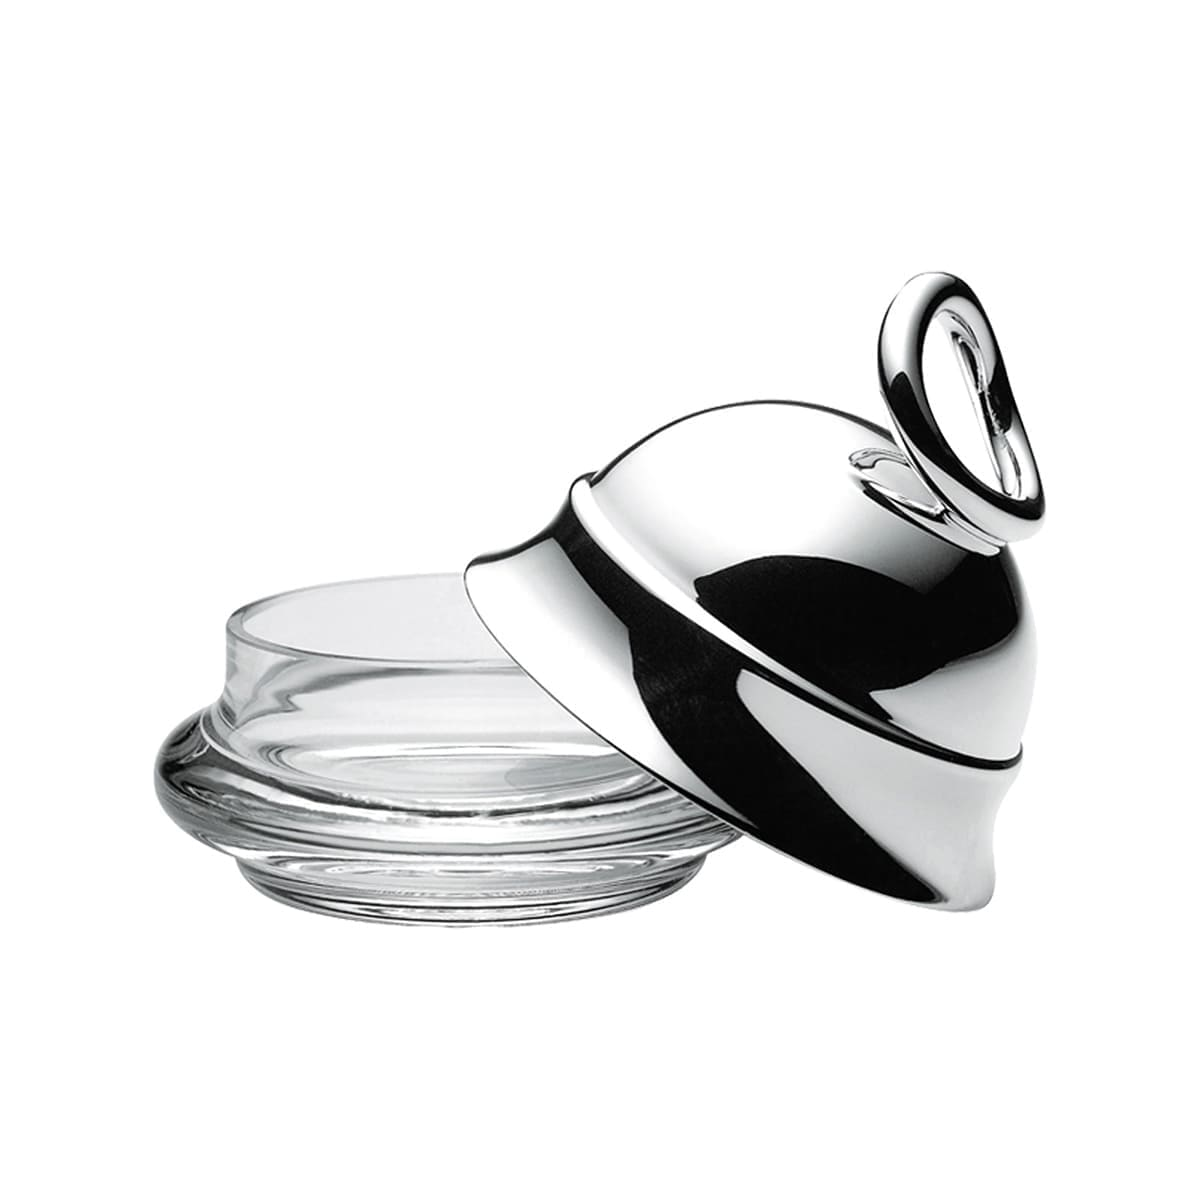 christofle silver plated vertigo butter dish